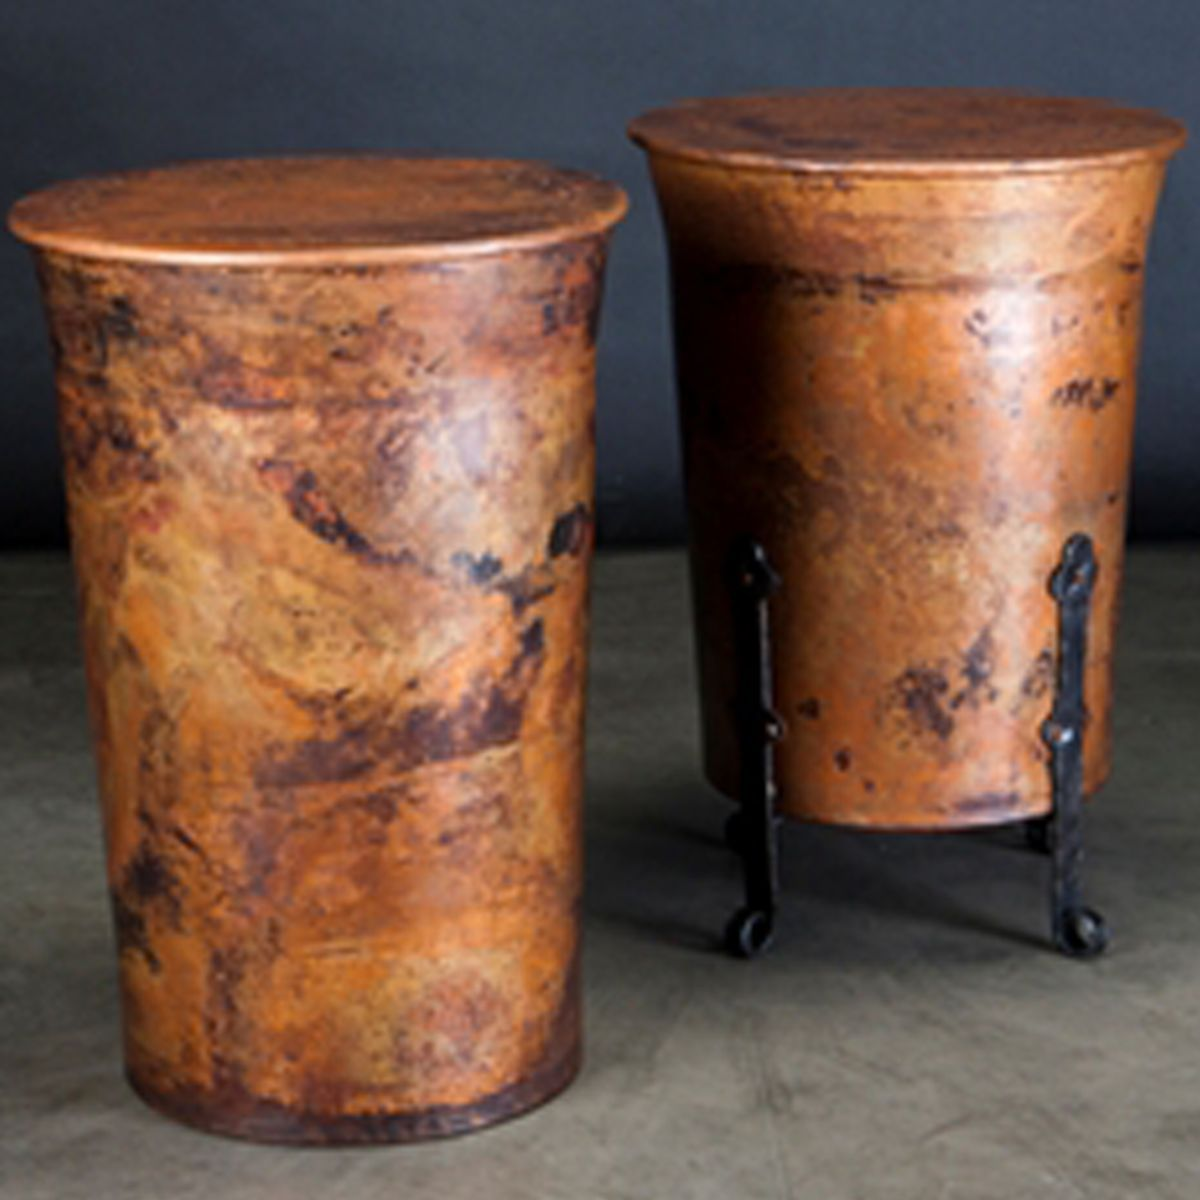 Jackson Hole Copper Accent Table (many Sizes)